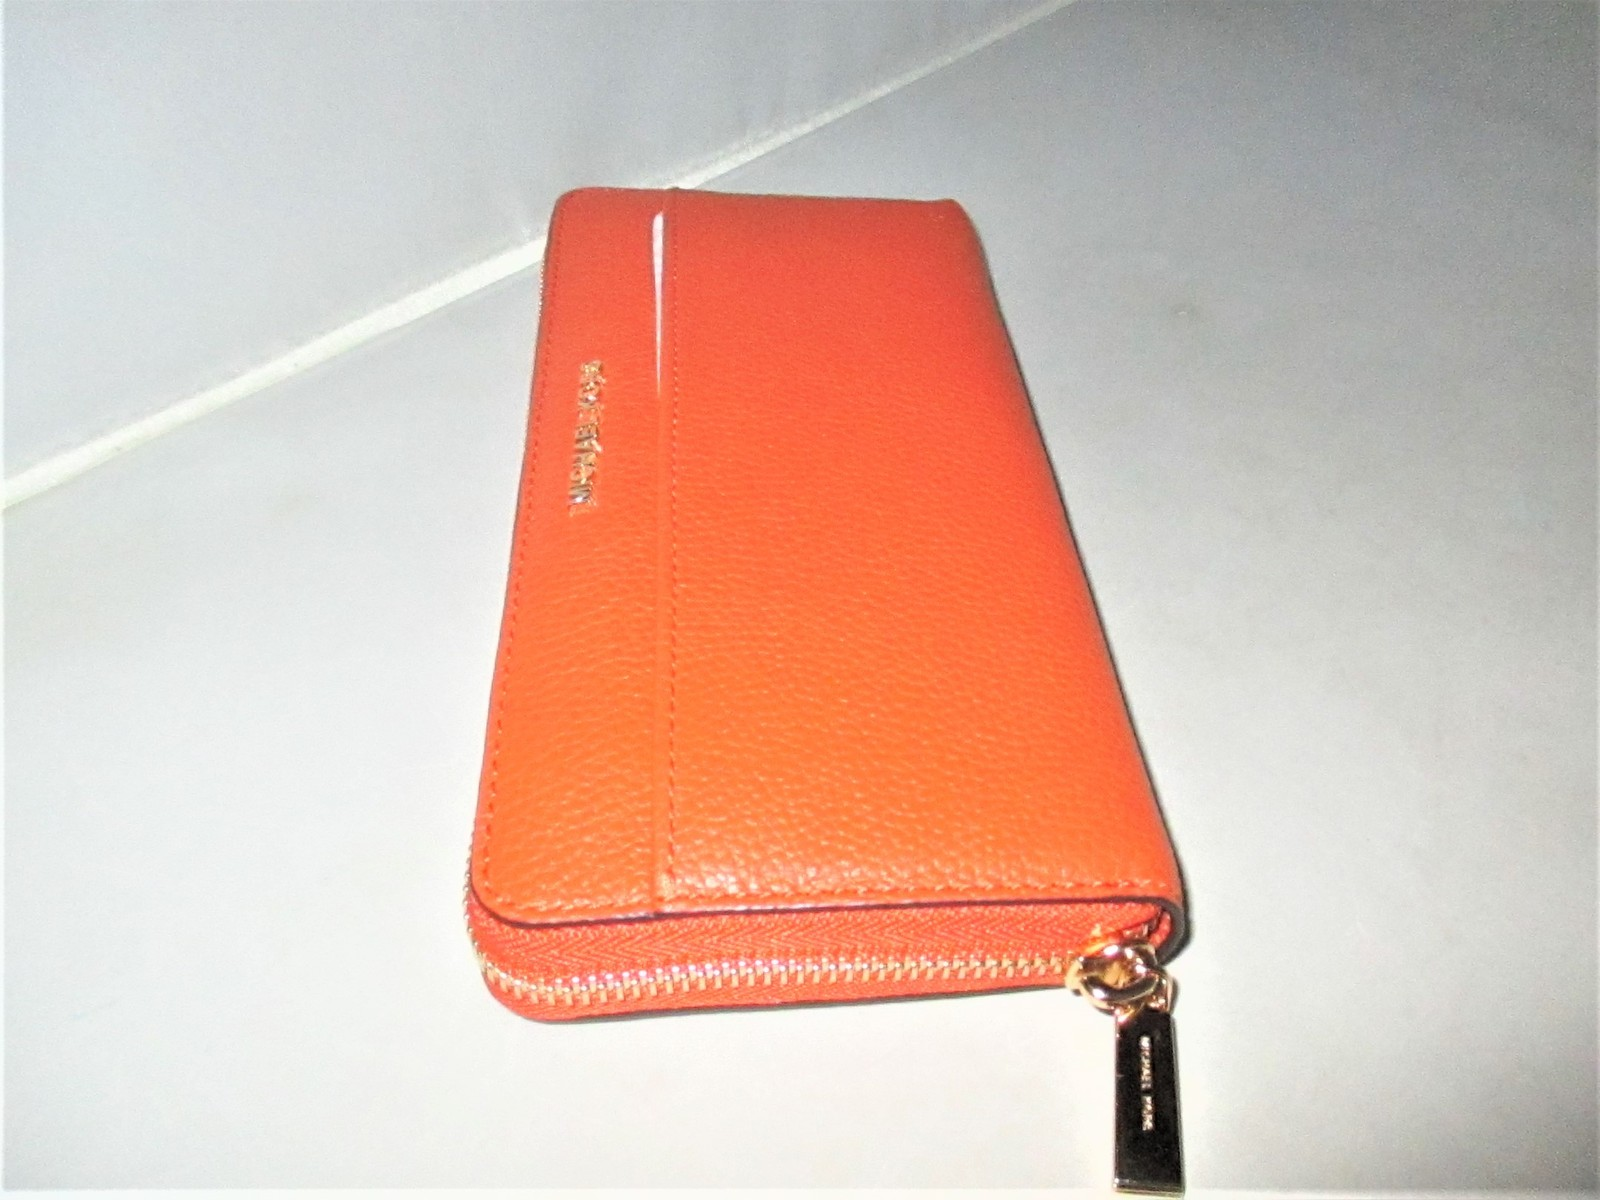 d6ca4f76cee7 Michael Kors Mercer Pebbled Leather Zip-Around Continental Wallet $158  Orange